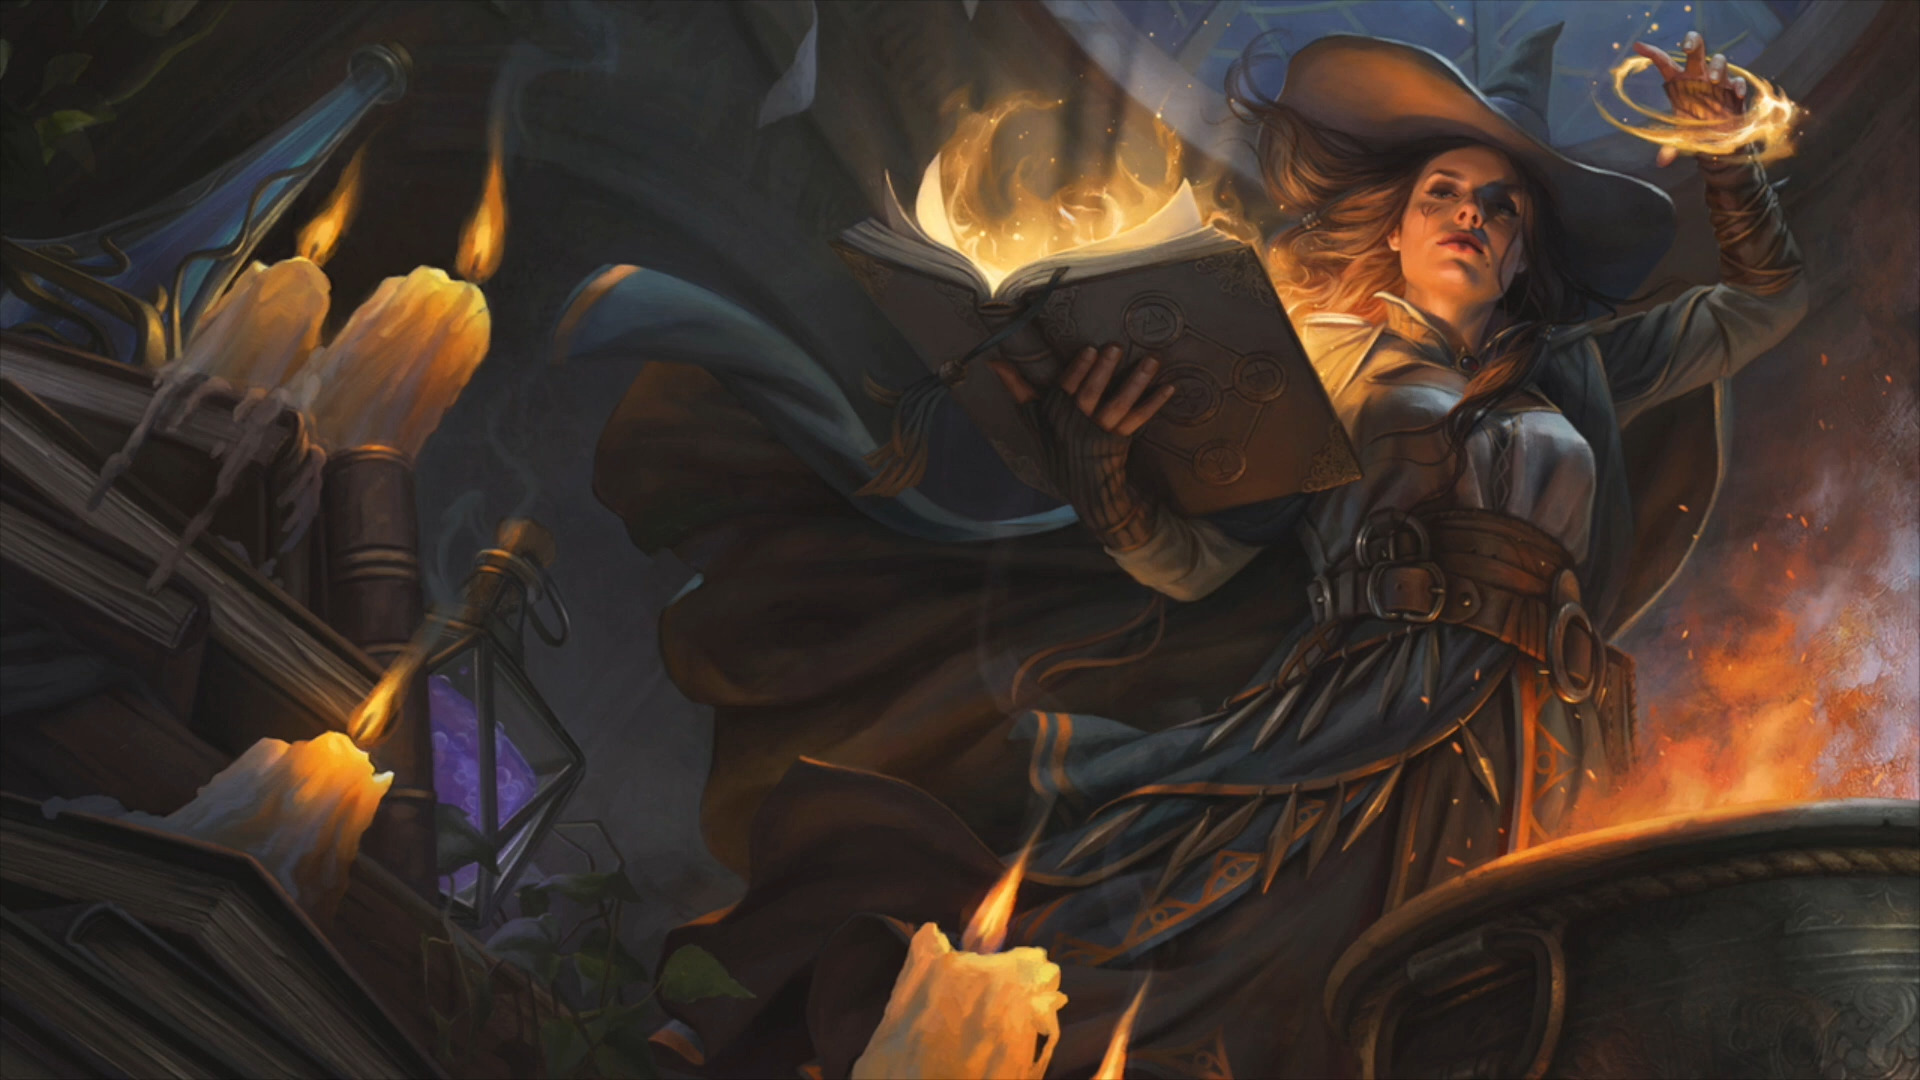 Tasha's Cauldron Of Everything: What We Know About Wizards Of The Coast's Upcoming Rules Expansion